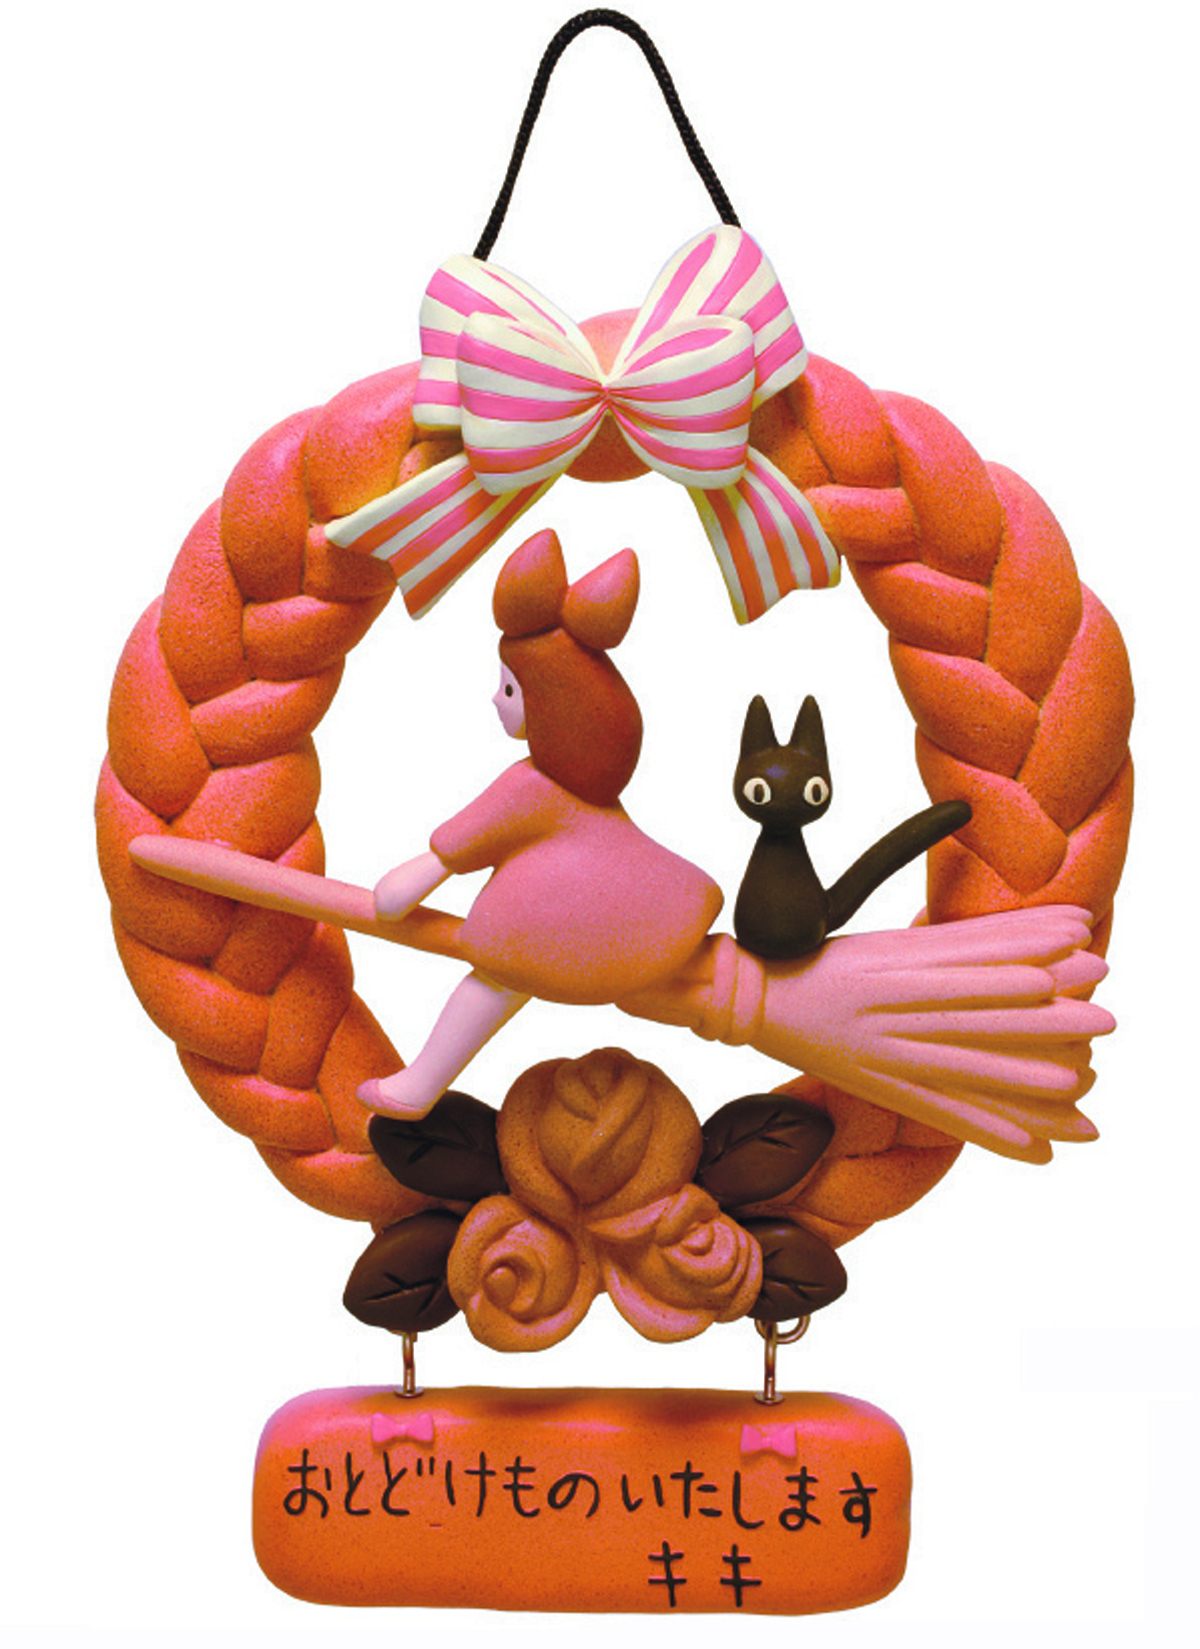 May152488 Kikis Delivery Service Wreath Of Guchokipanya